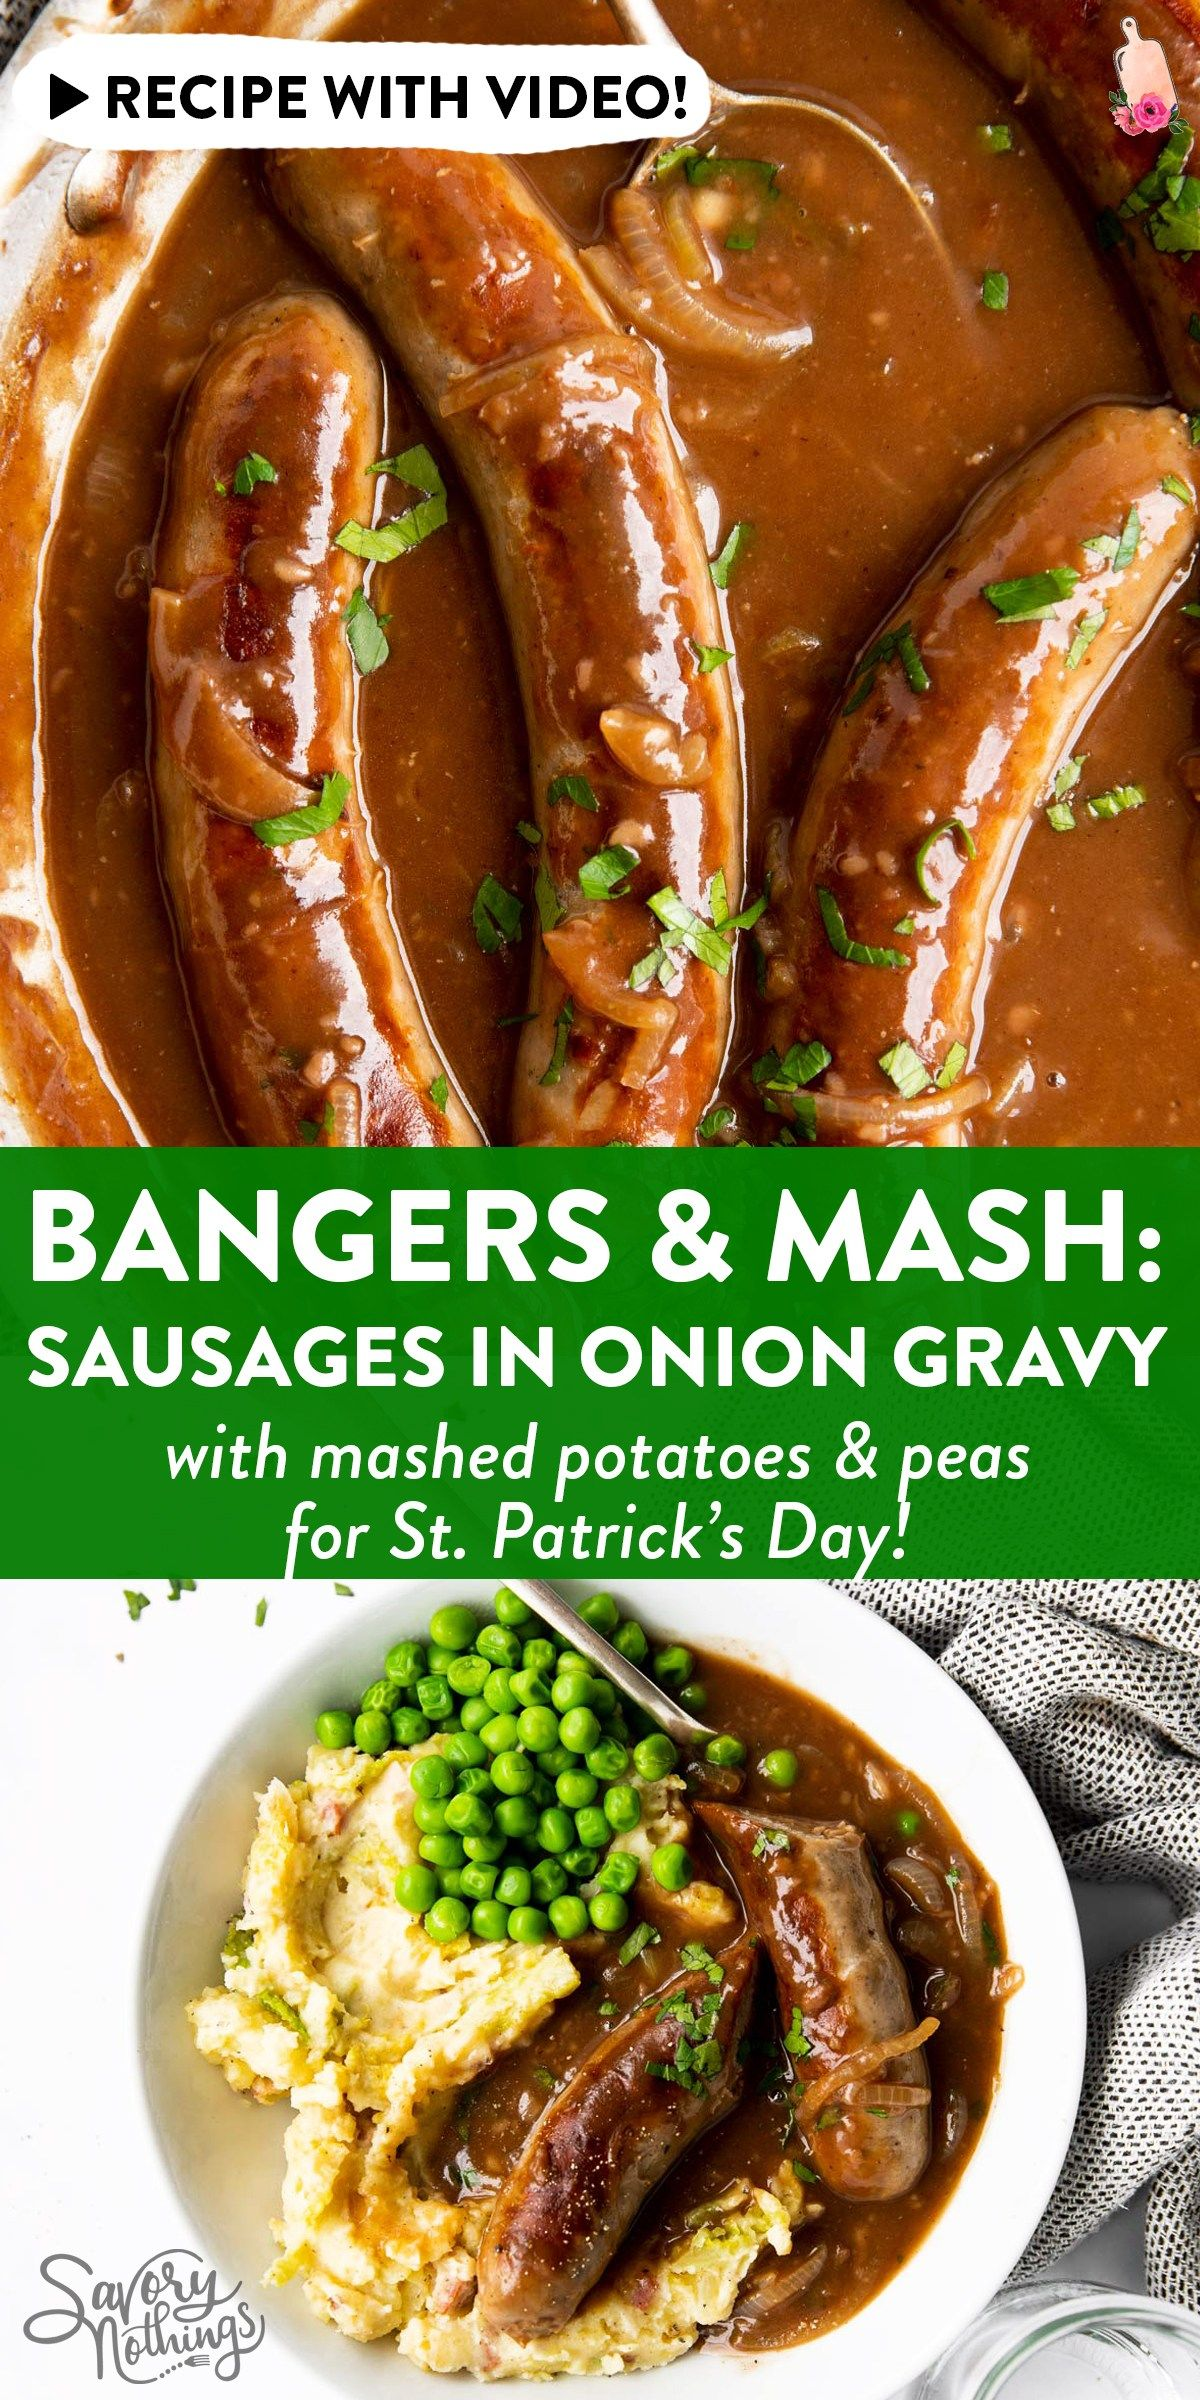 Sausages and Onion Gravy: Bangers and Mash! [Recip